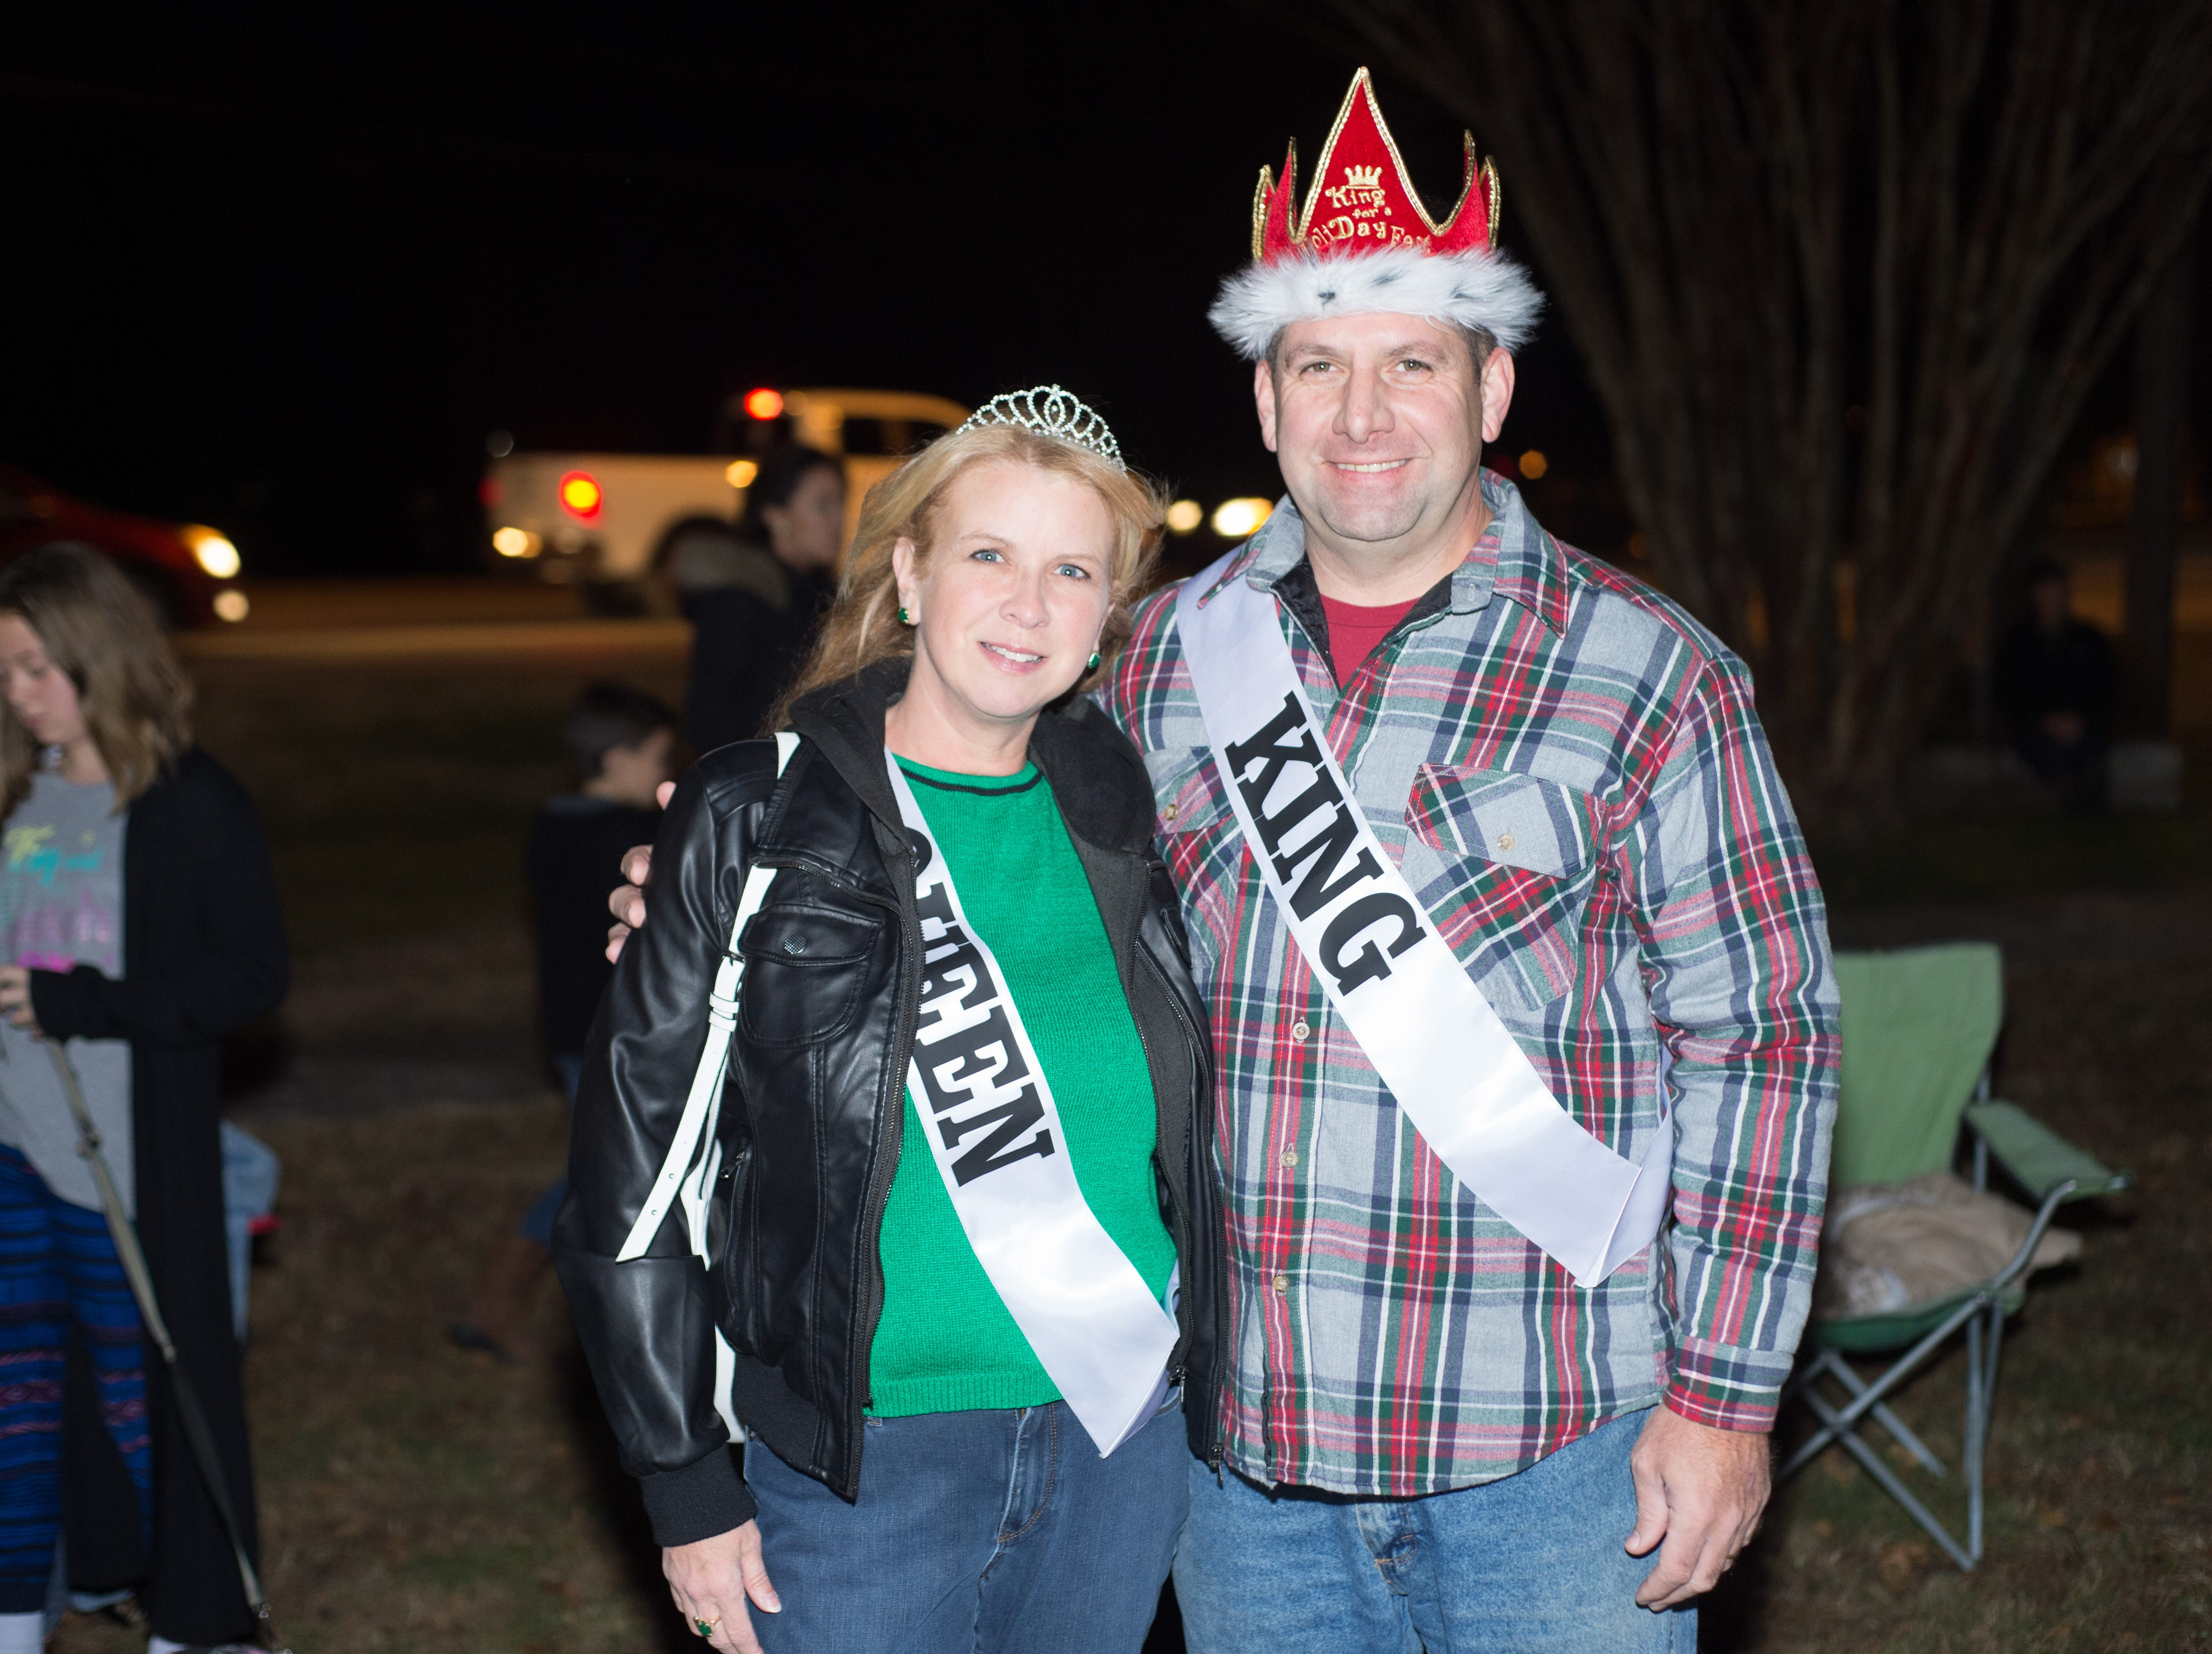 2018 HolidayFest Queen and King Rachel and Tommy McAuley pause for a photograph during the Hendersonville HolidayFest Annual Tree Lighting Ceremony at Memorial Park on Sunday, Nov. 25.